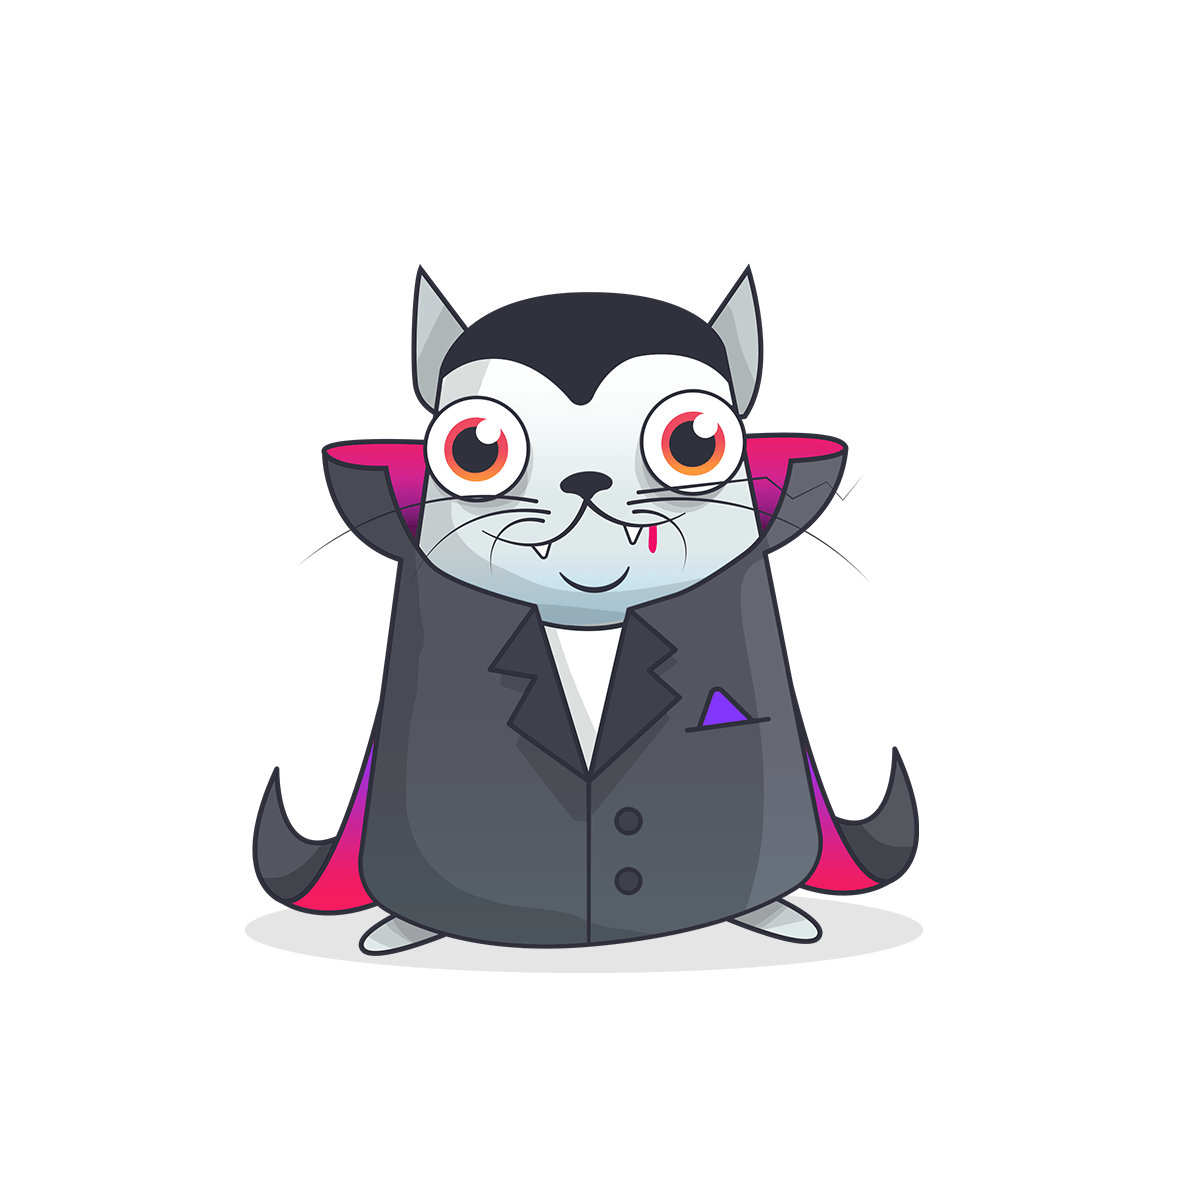 Vampire clipart transparent background. Cryptokitty dracula png stickpng